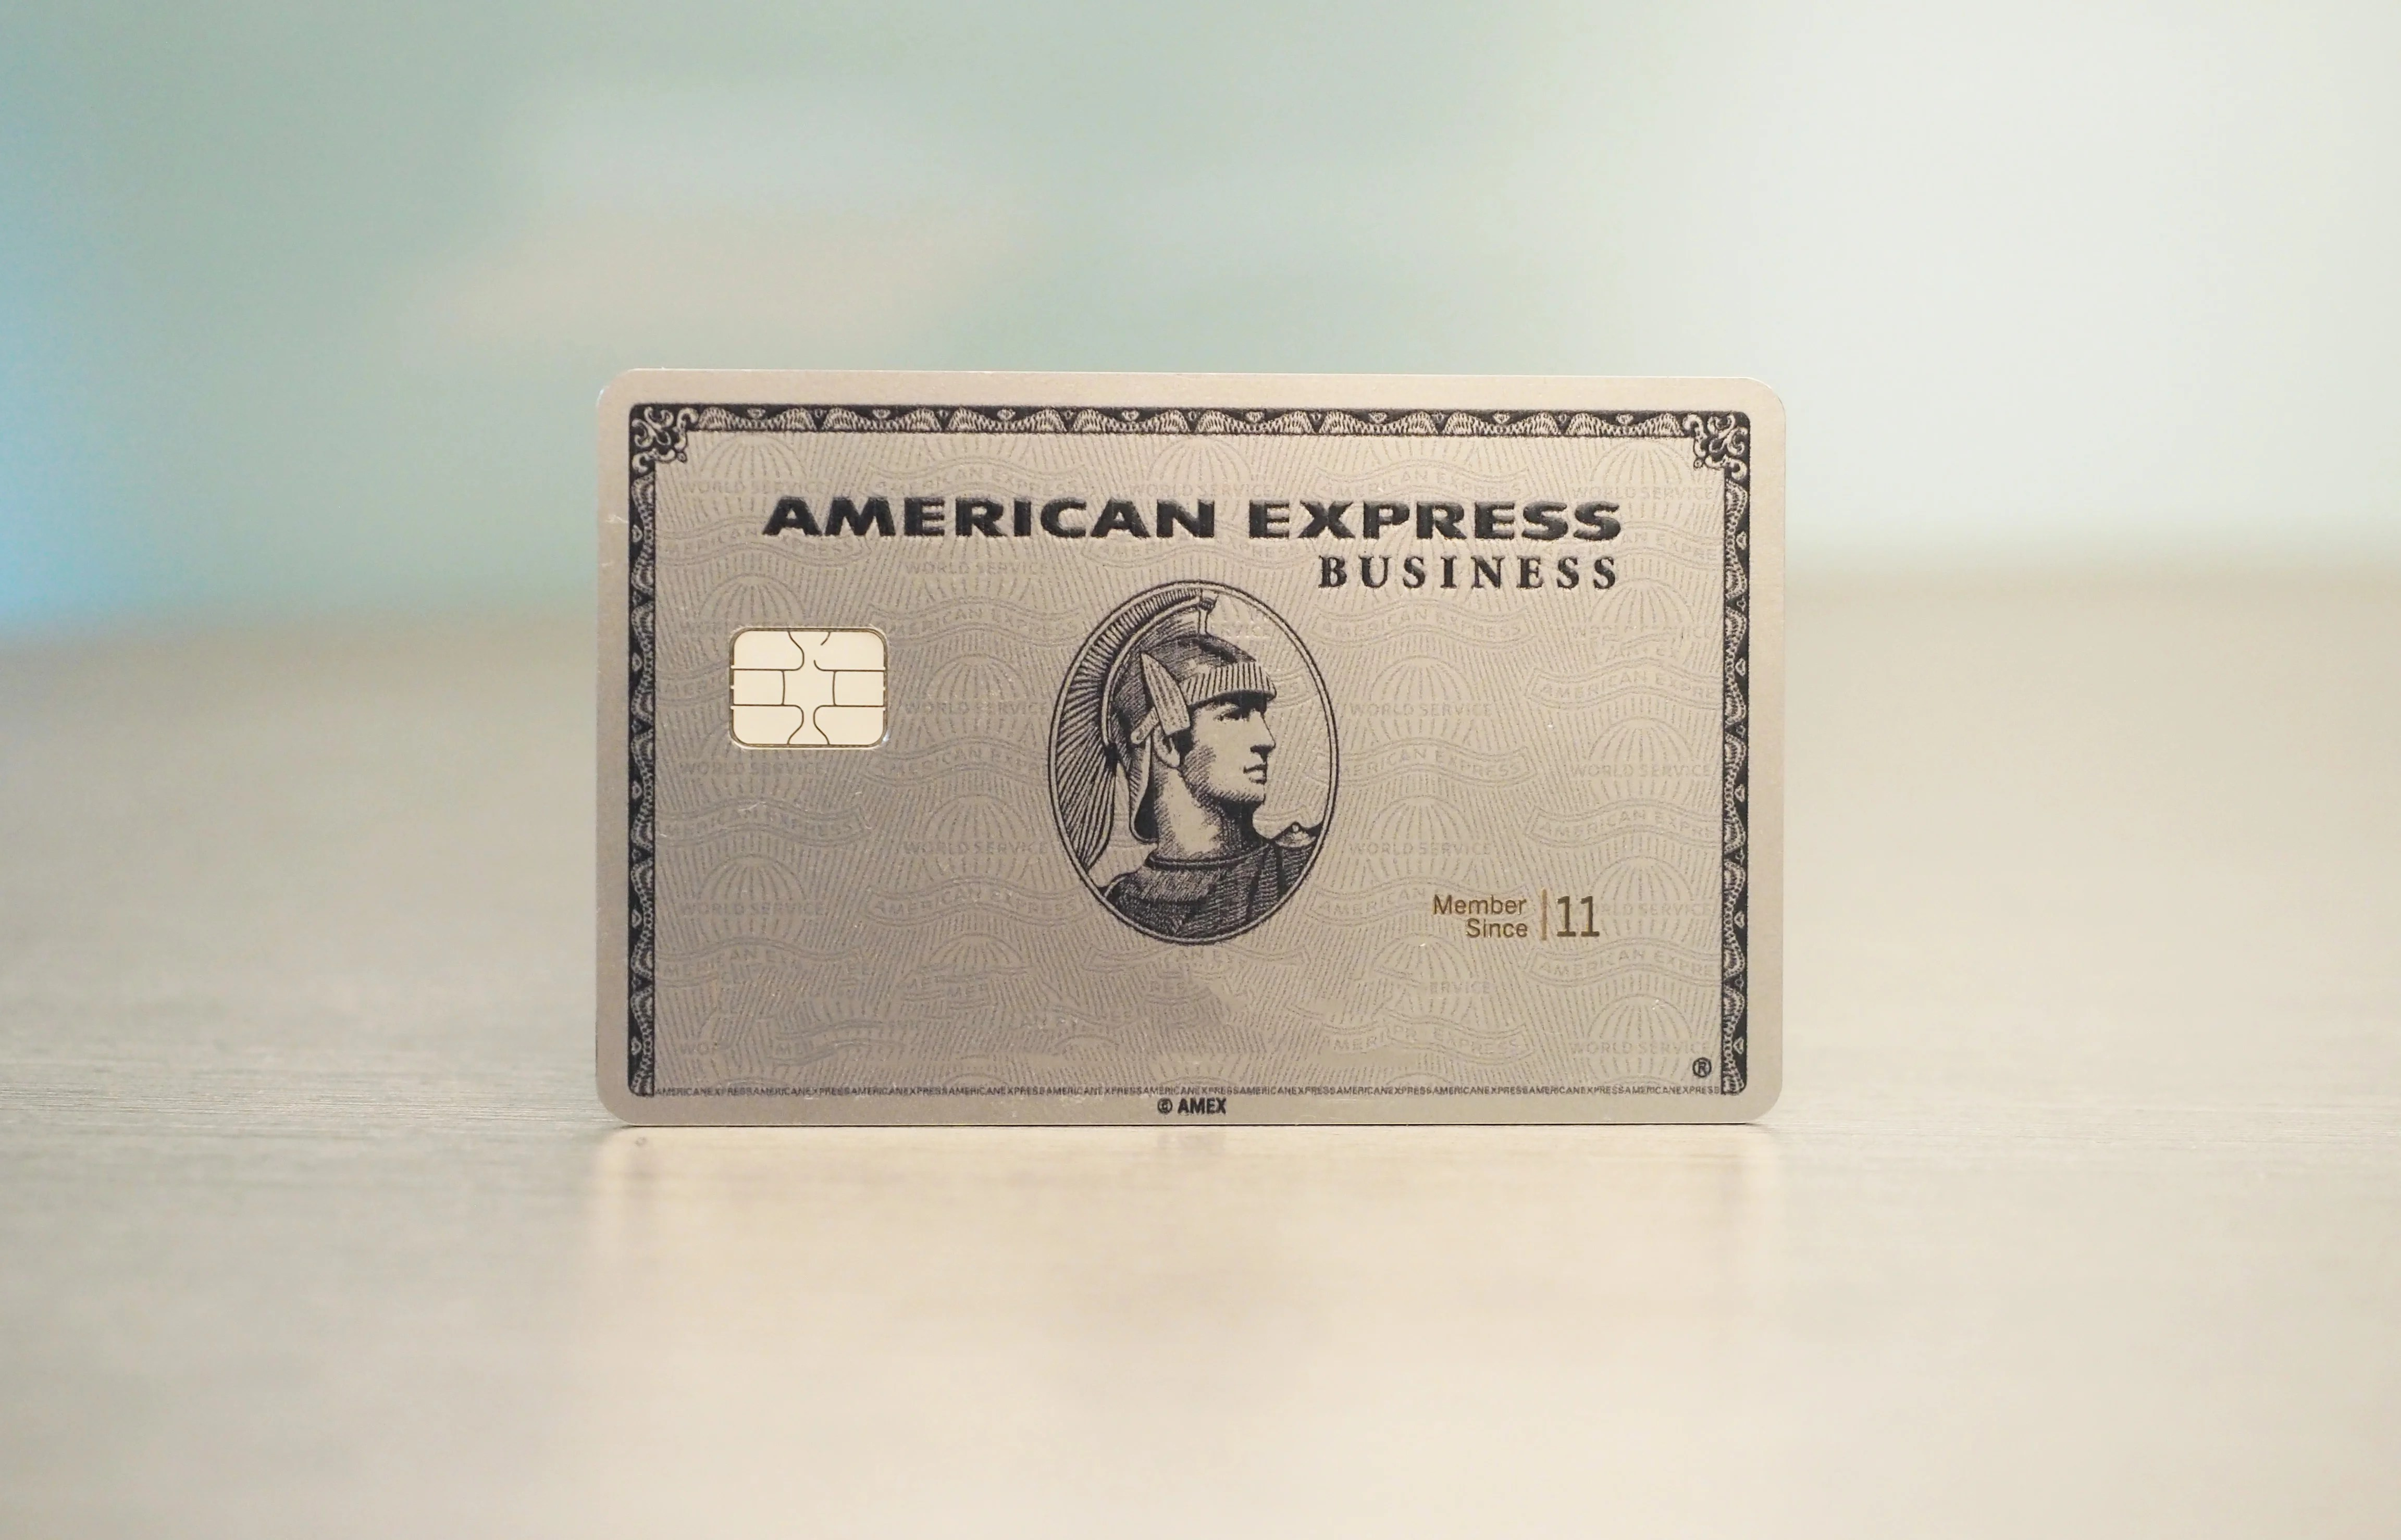 lesser known benefits of the amex business platinum card